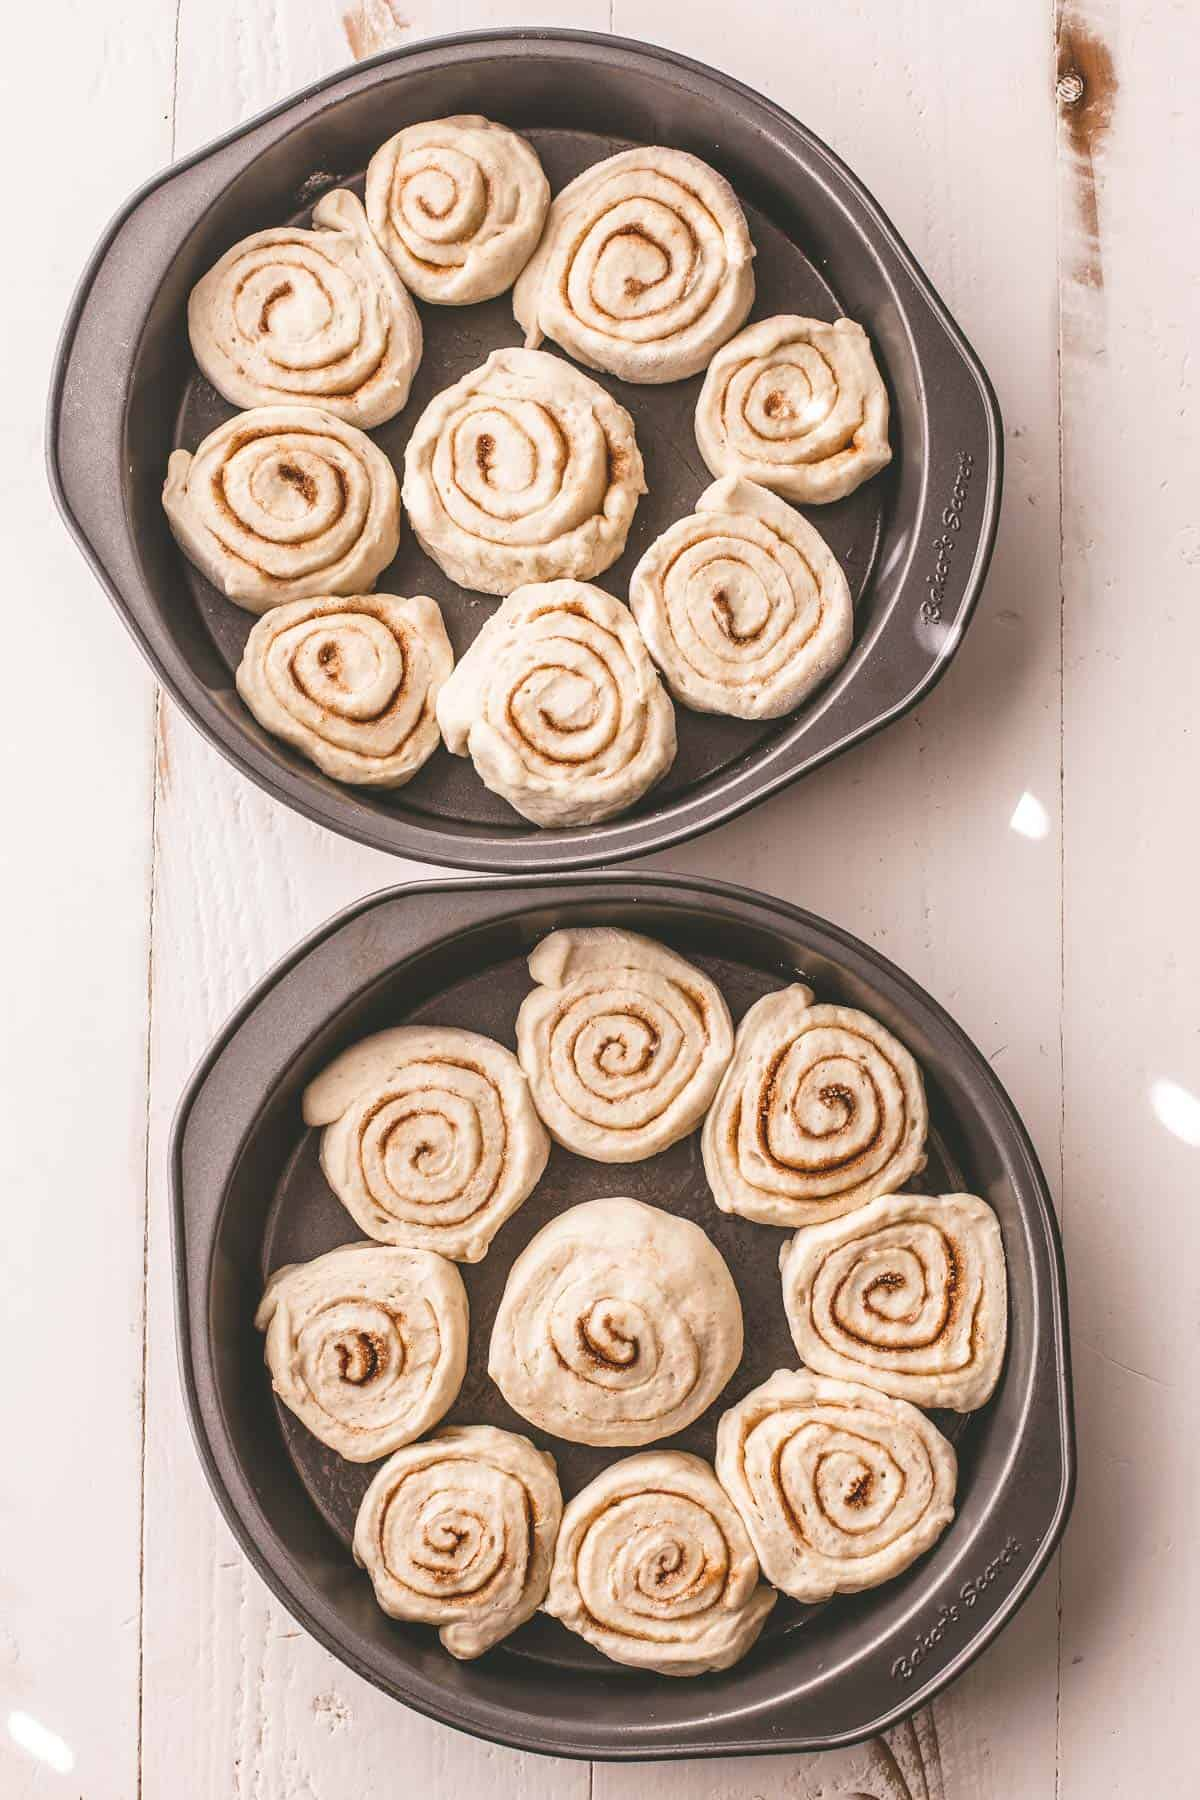 rolled uncooked cinnamon rolls in a round baking pan